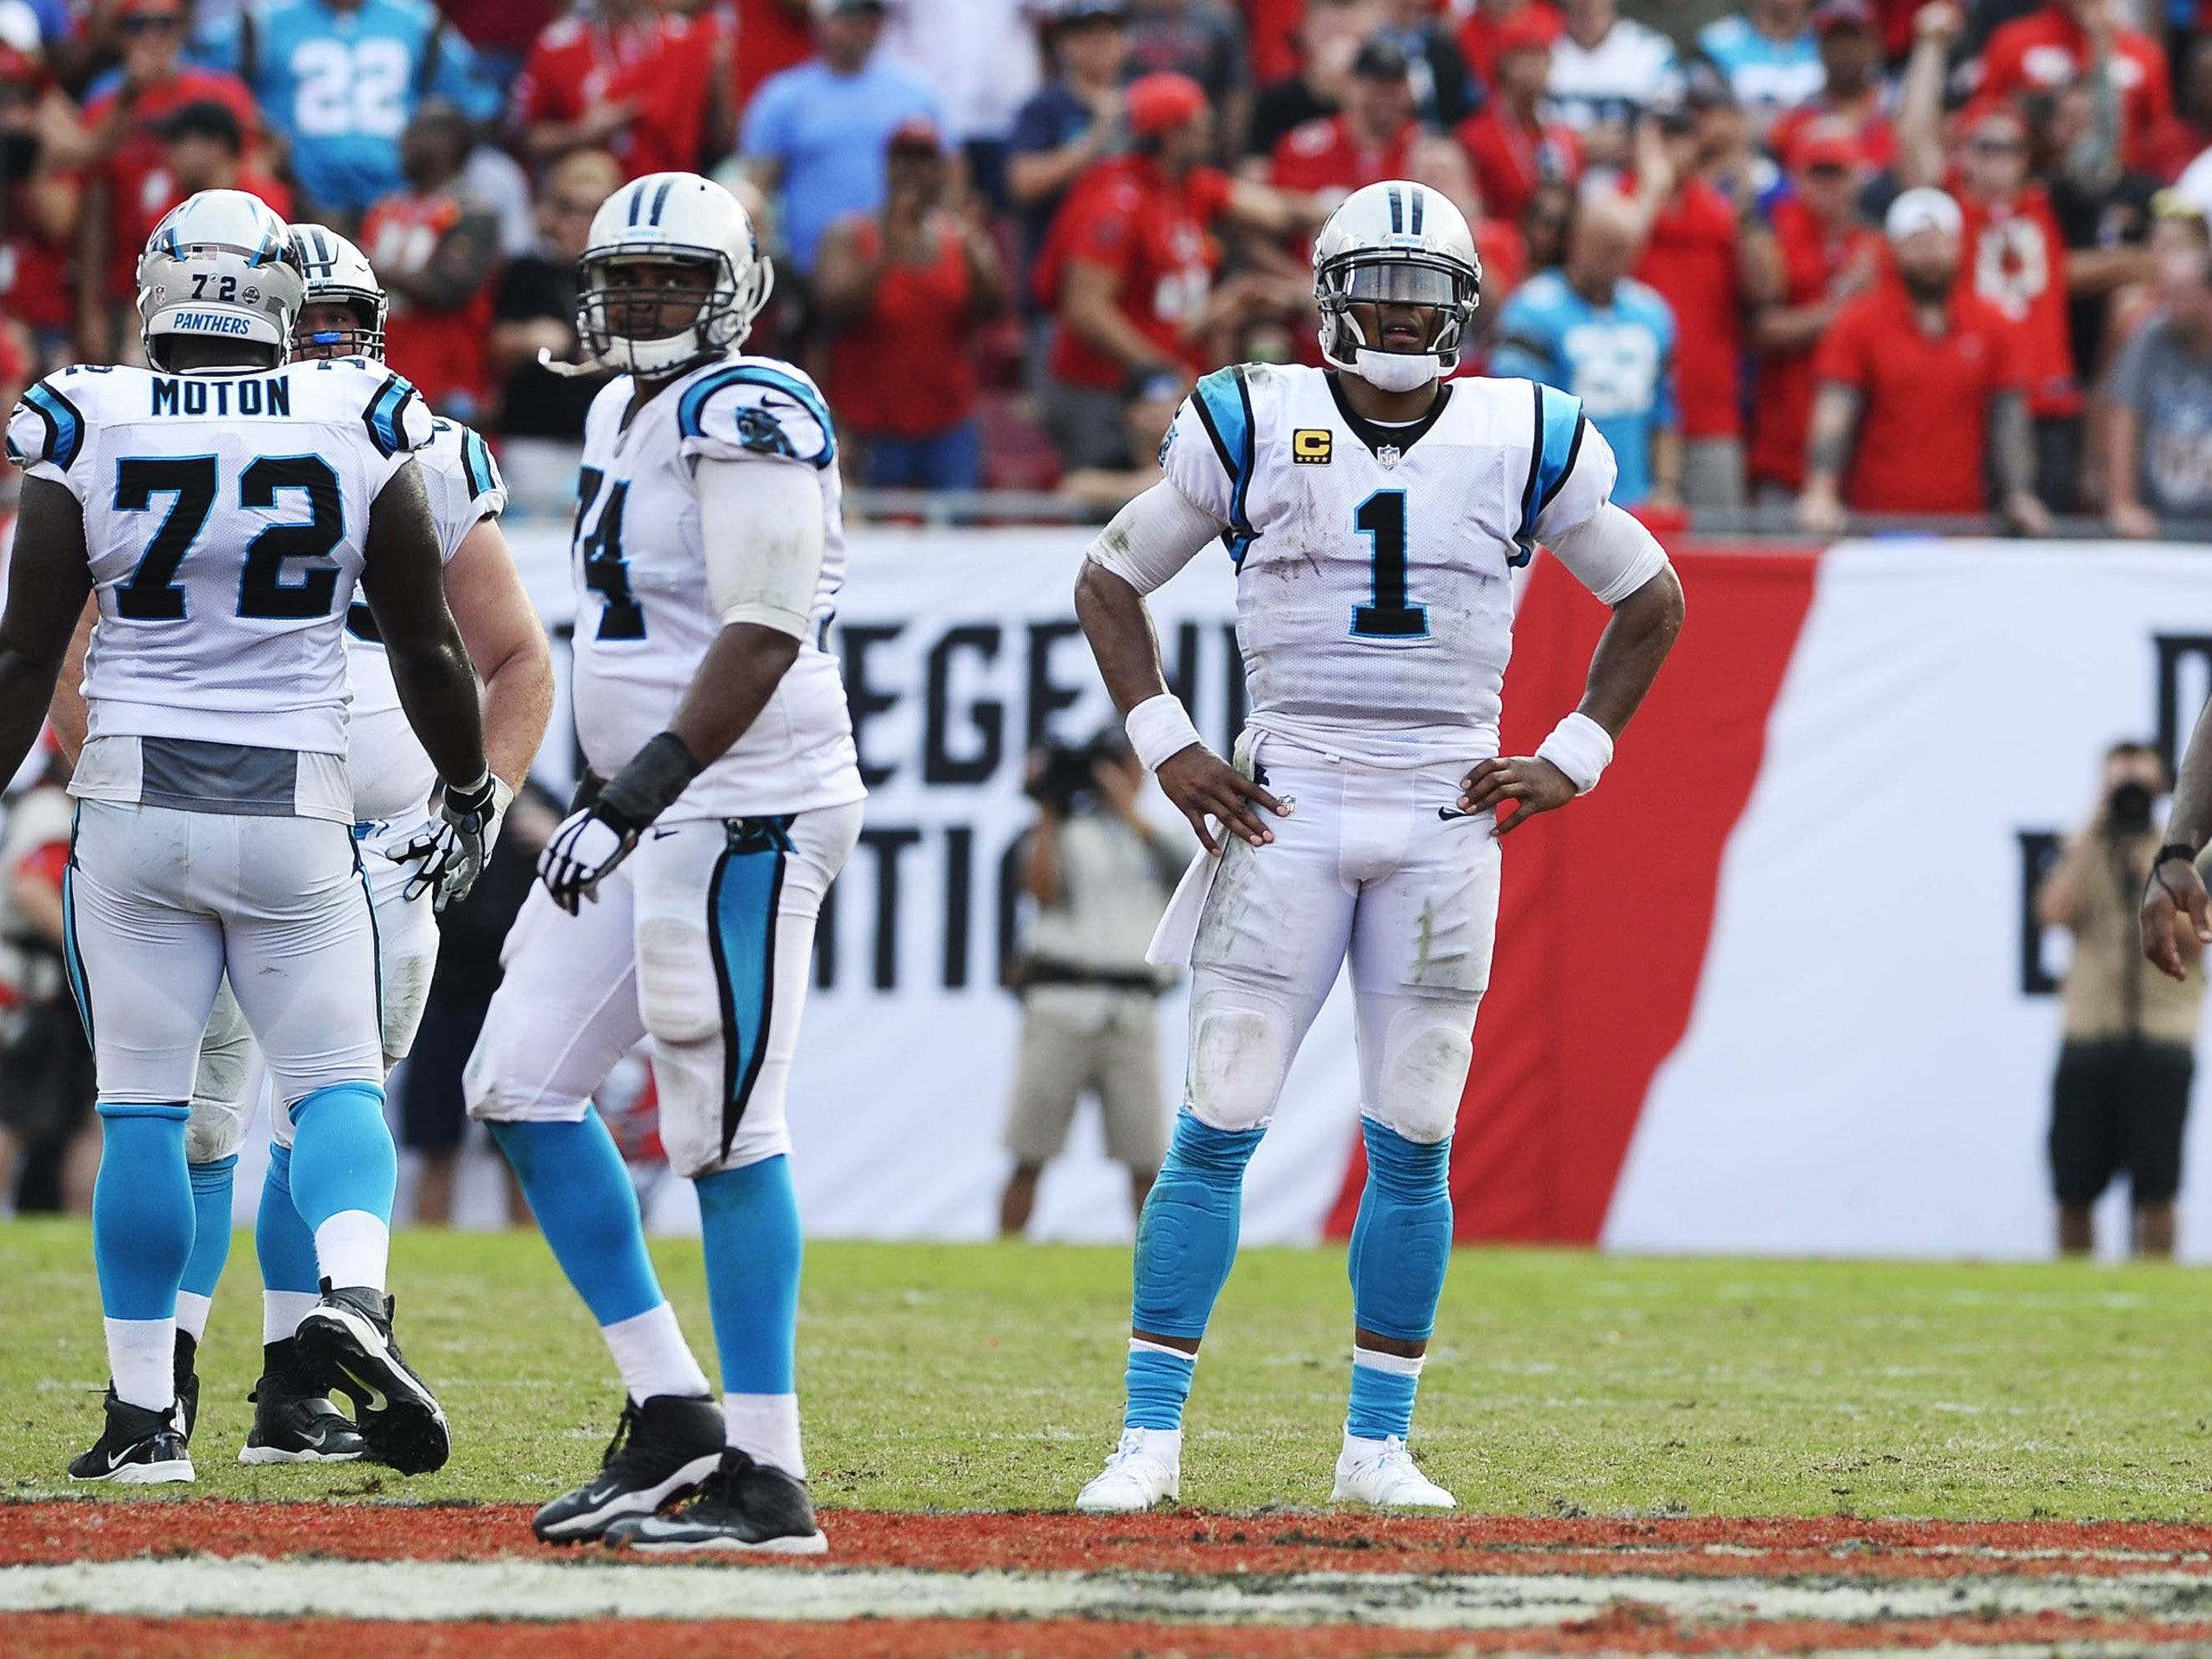 18. Panthers (6-6) | Last game: Lost to the Buccaneers, 24-17 | Previous ranking: 14 | The buzz: Ron Rivera dropped a bomb on his staff, but with two games left vs New Orleans, Carolina isn't making the playoffs.